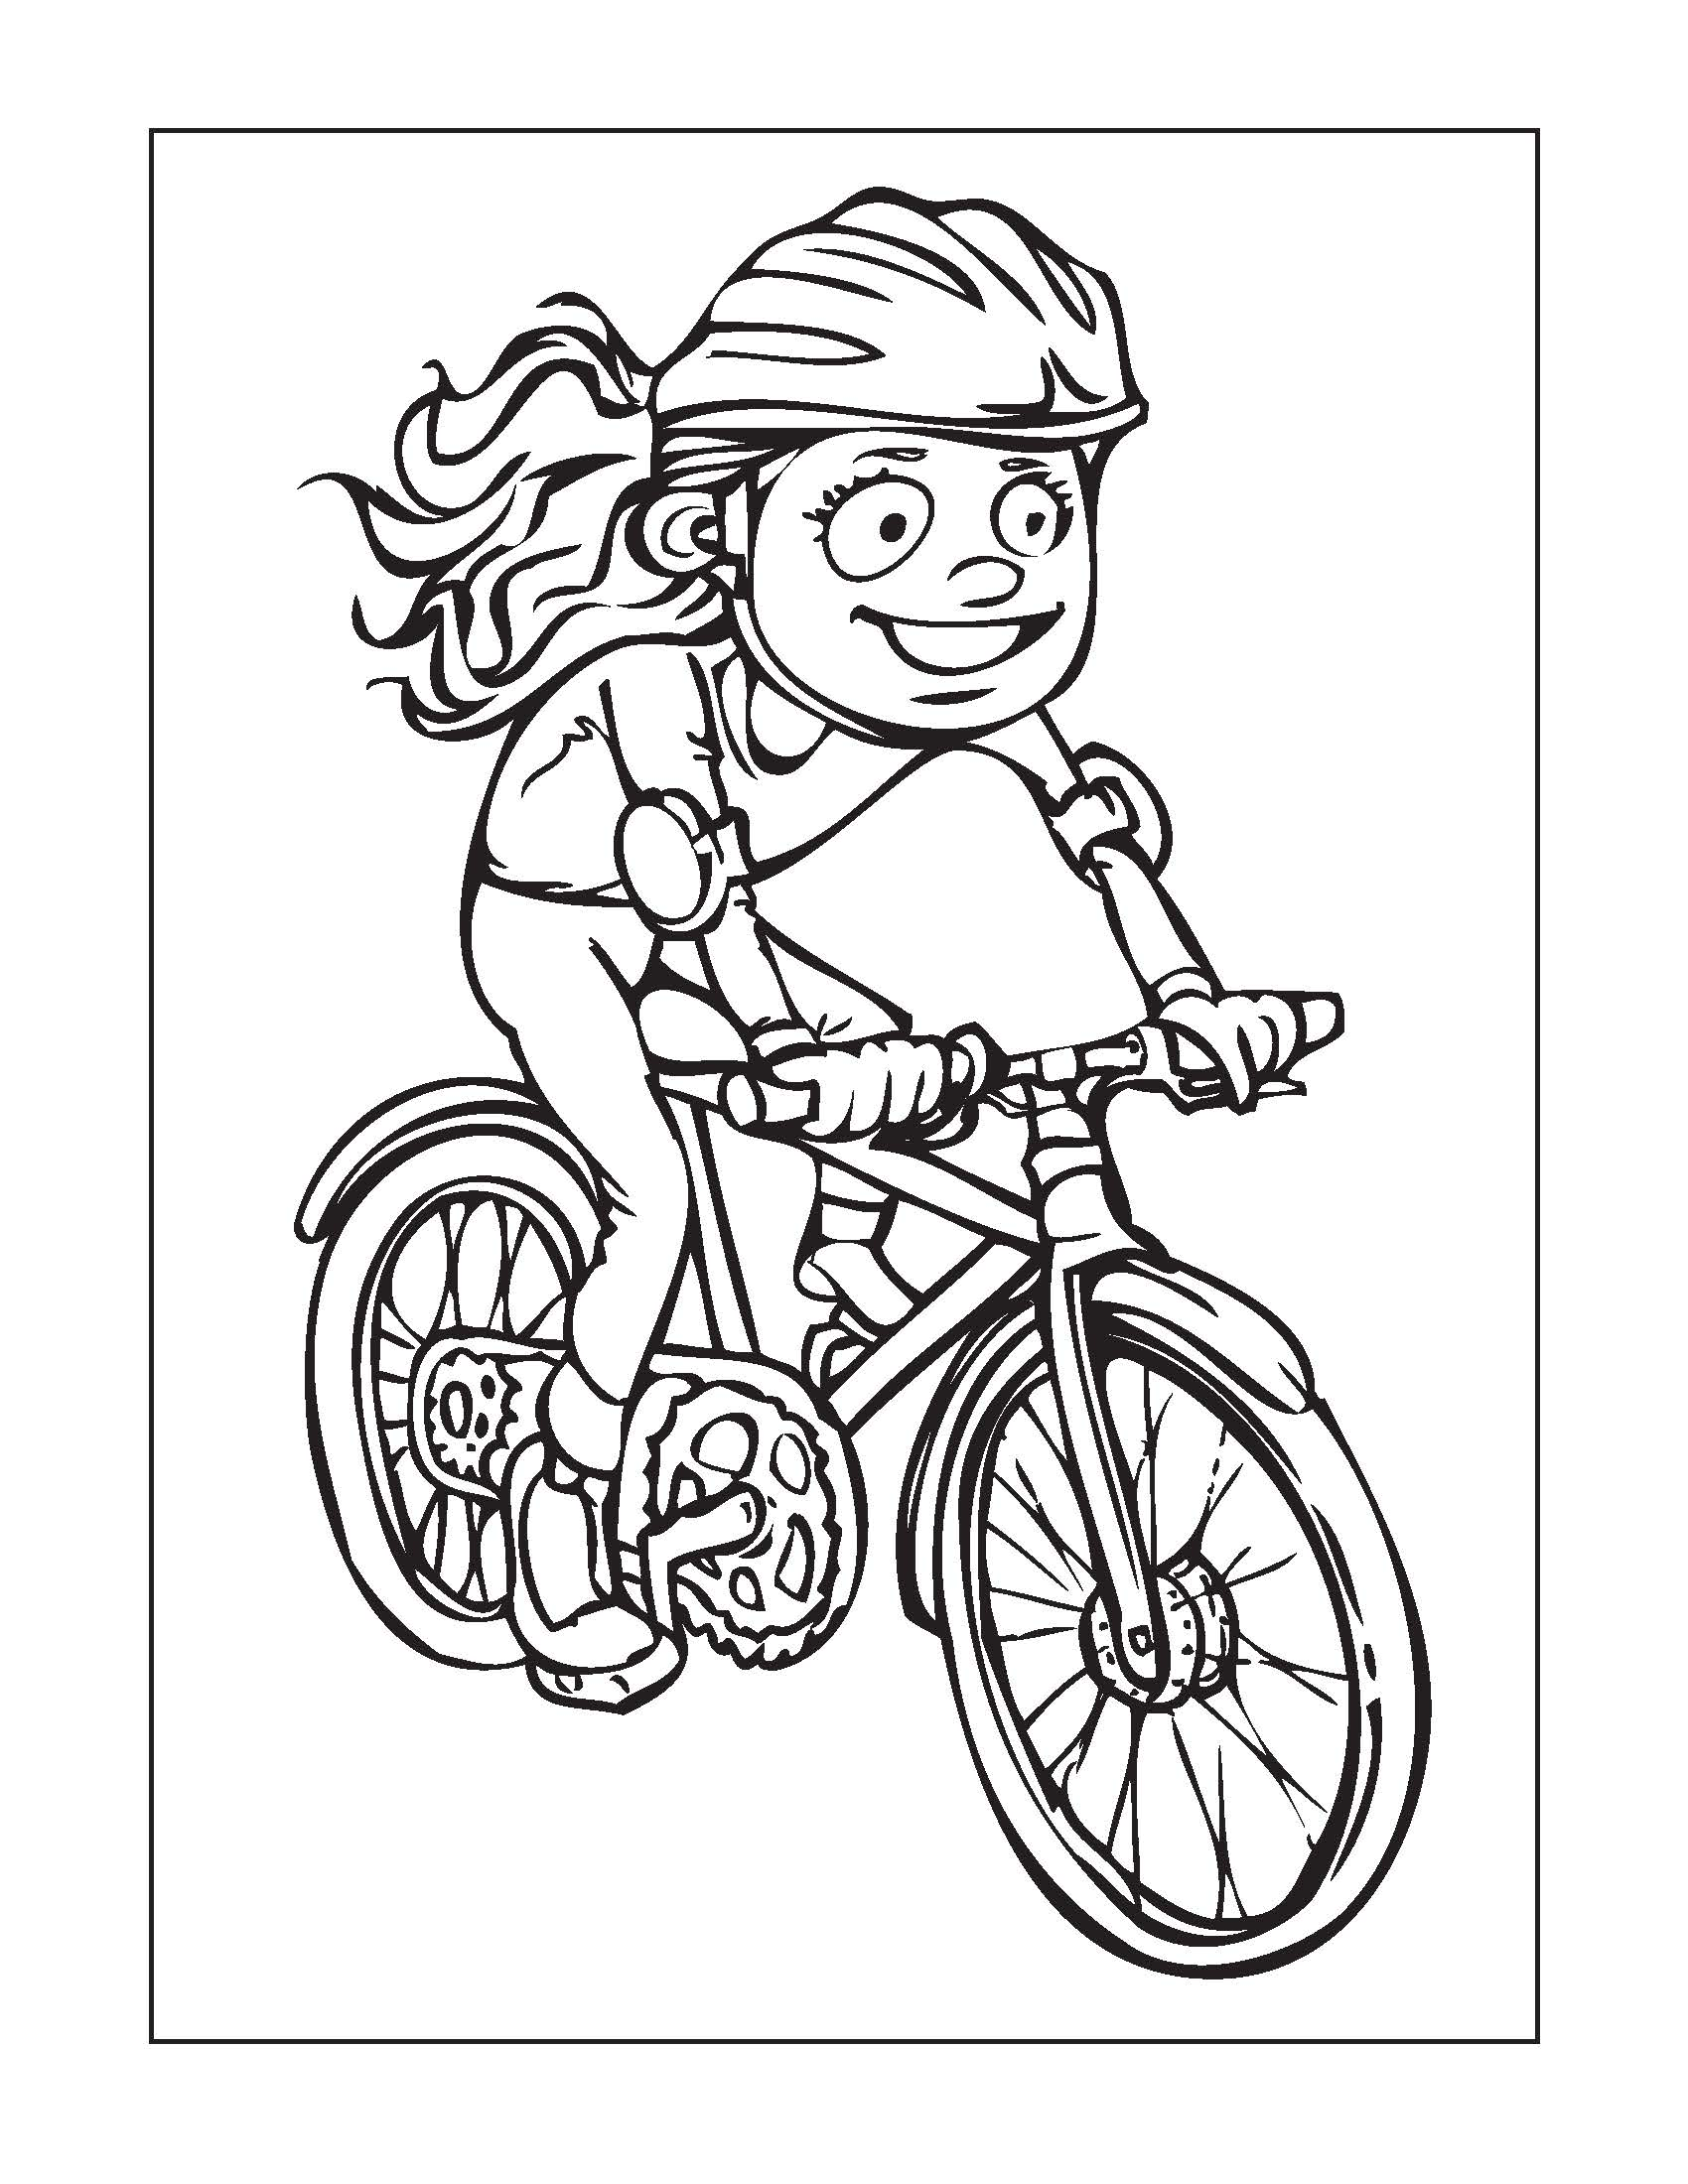 Coloring Page For Kids Bike Safety